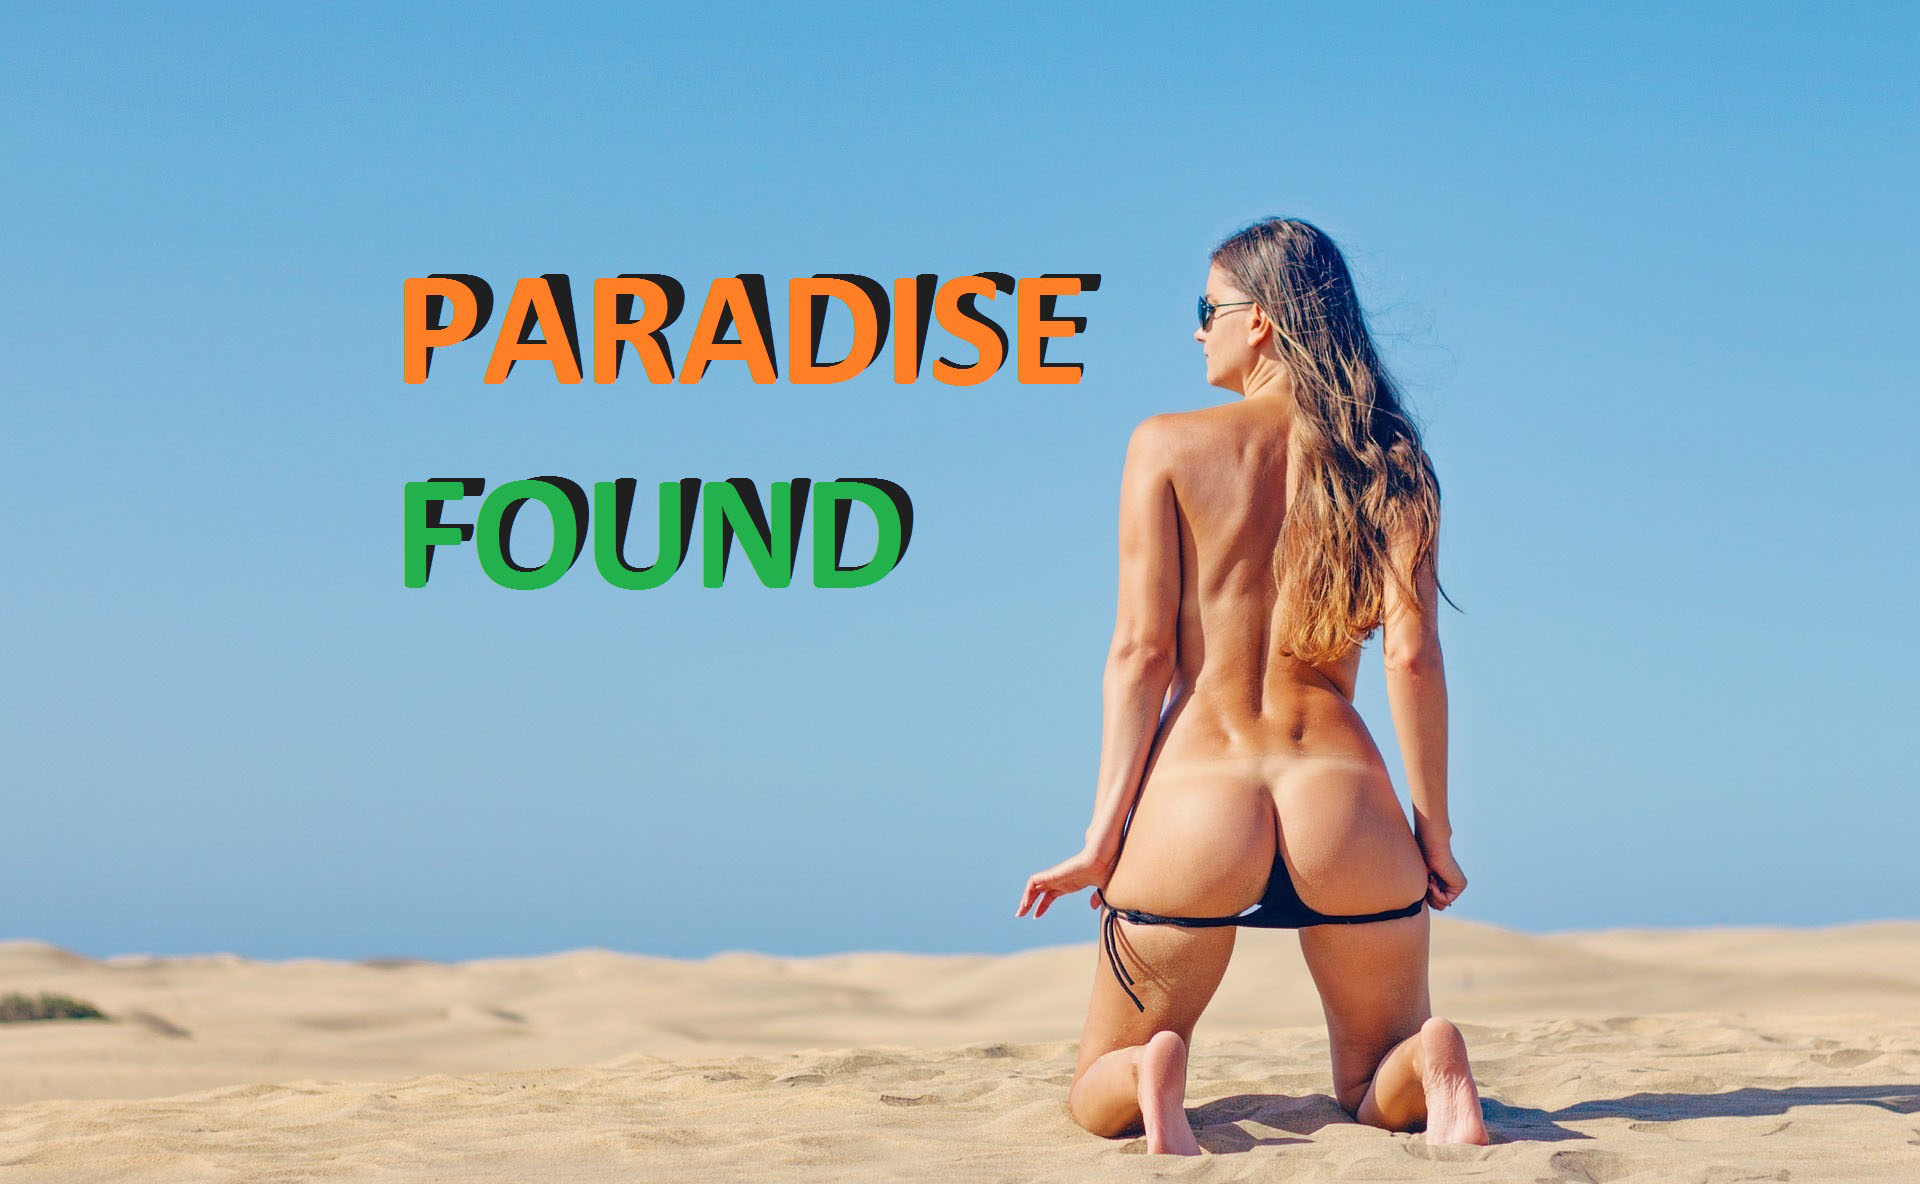 Paradise Found poster